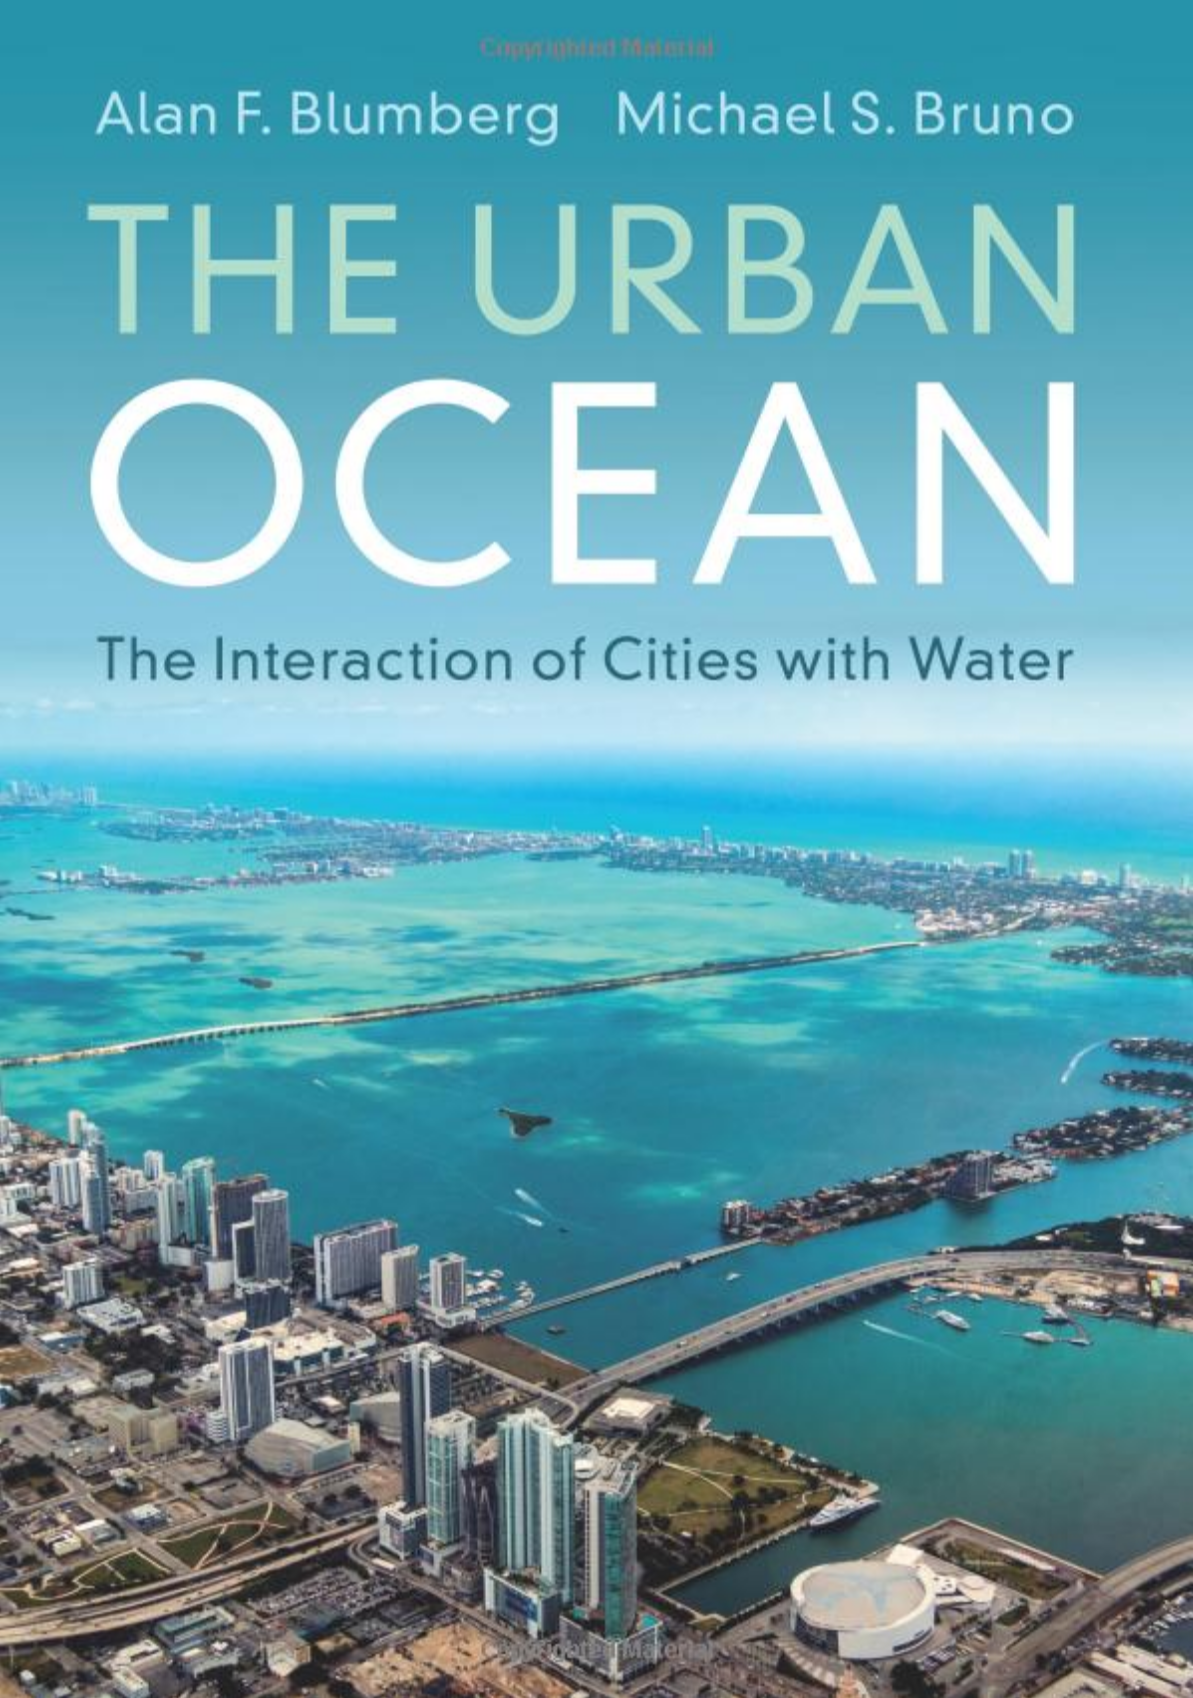 The Urban Ocean: The Interaction of Cities with Water